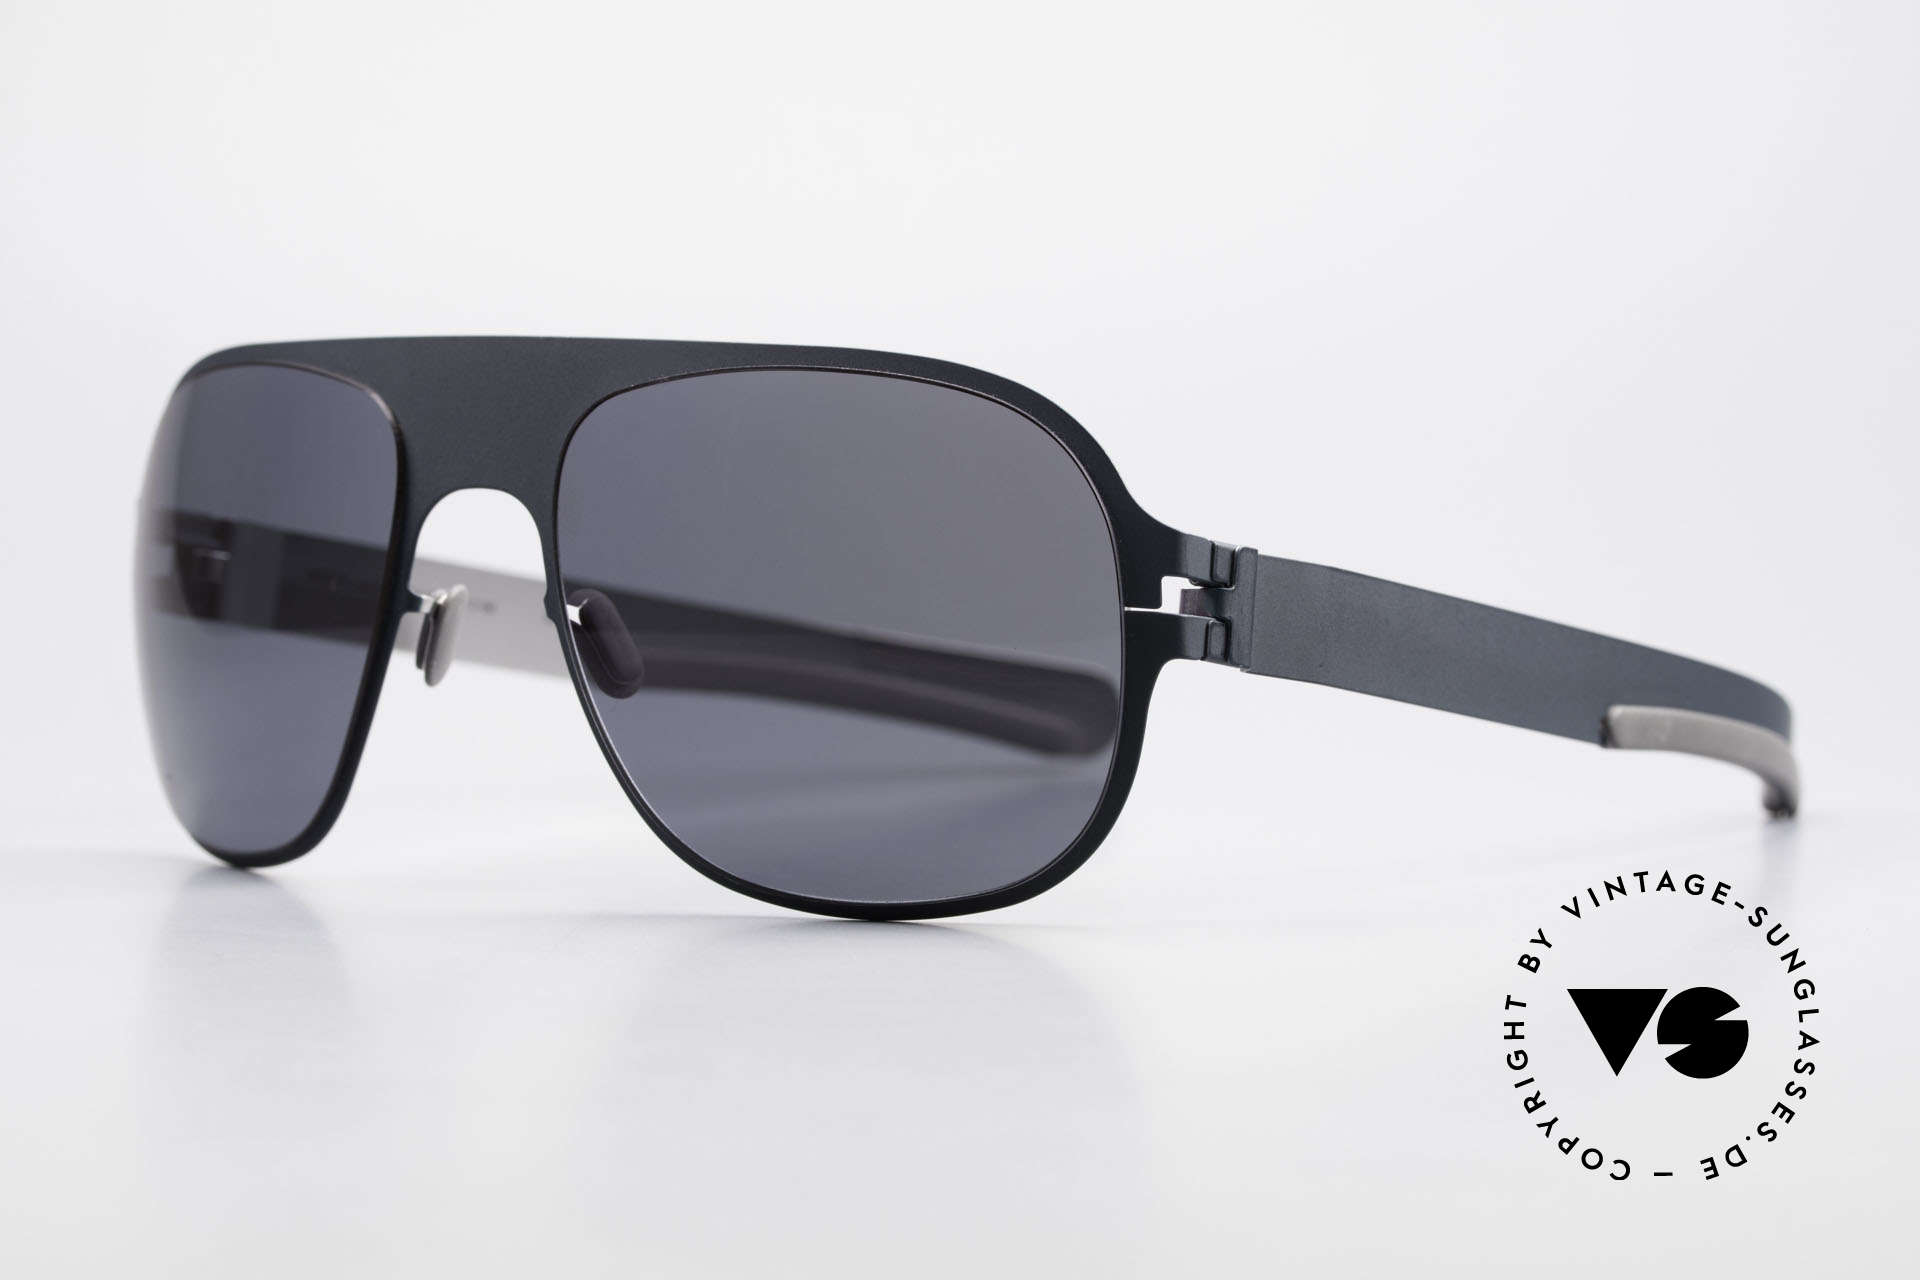 Mykita Rodney Limited Sunglasses From 2011, Limited Flash Rodney Indigo SS10M, black solid, 57/19, Made for Men